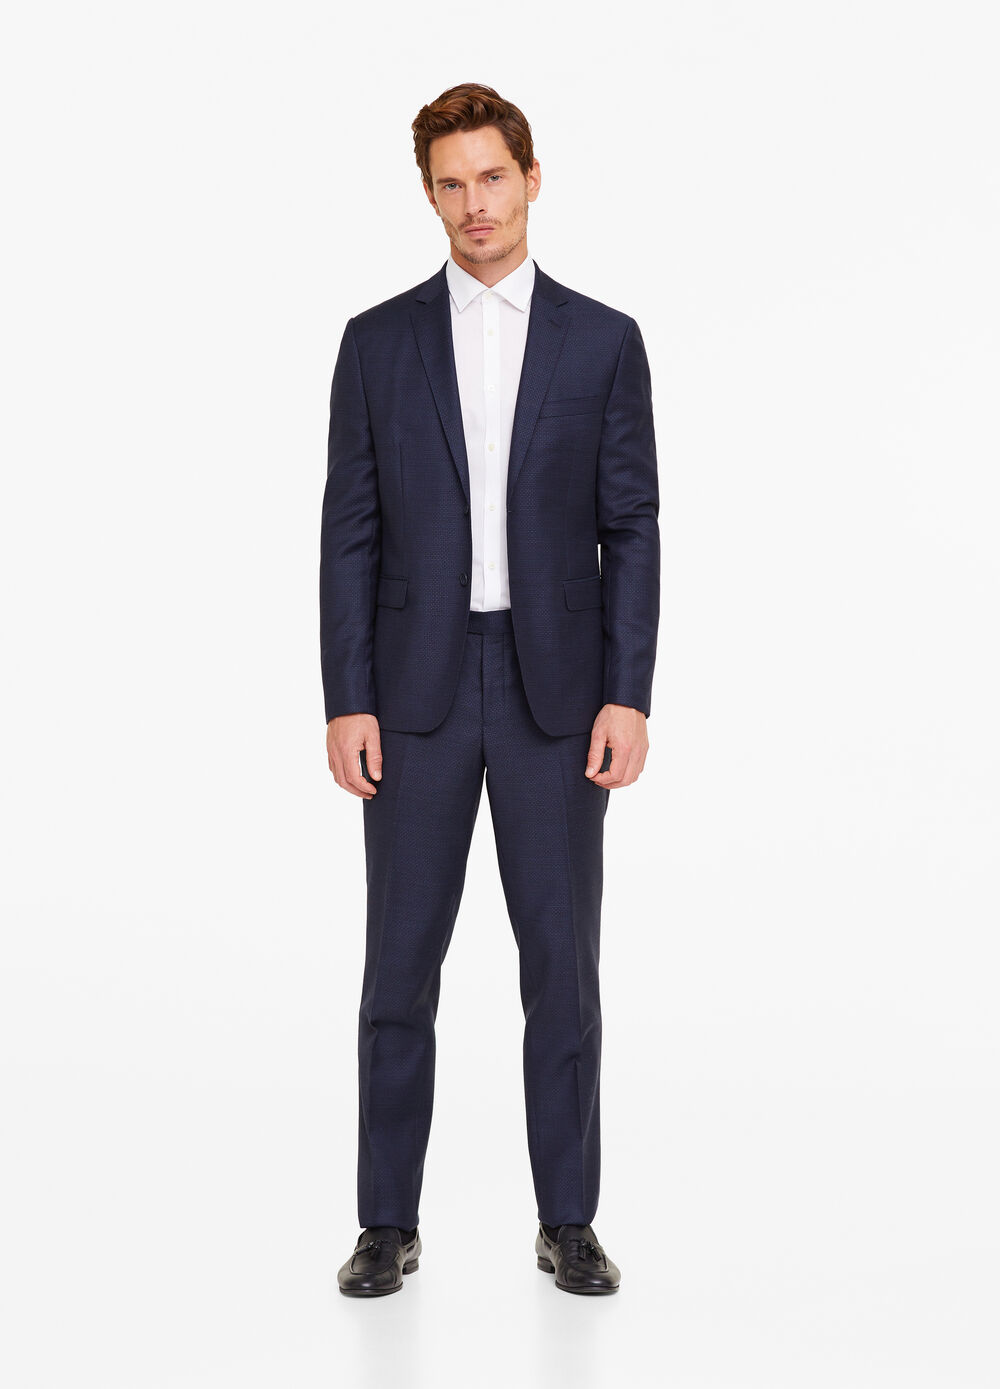 Regular fit 100% wool suit